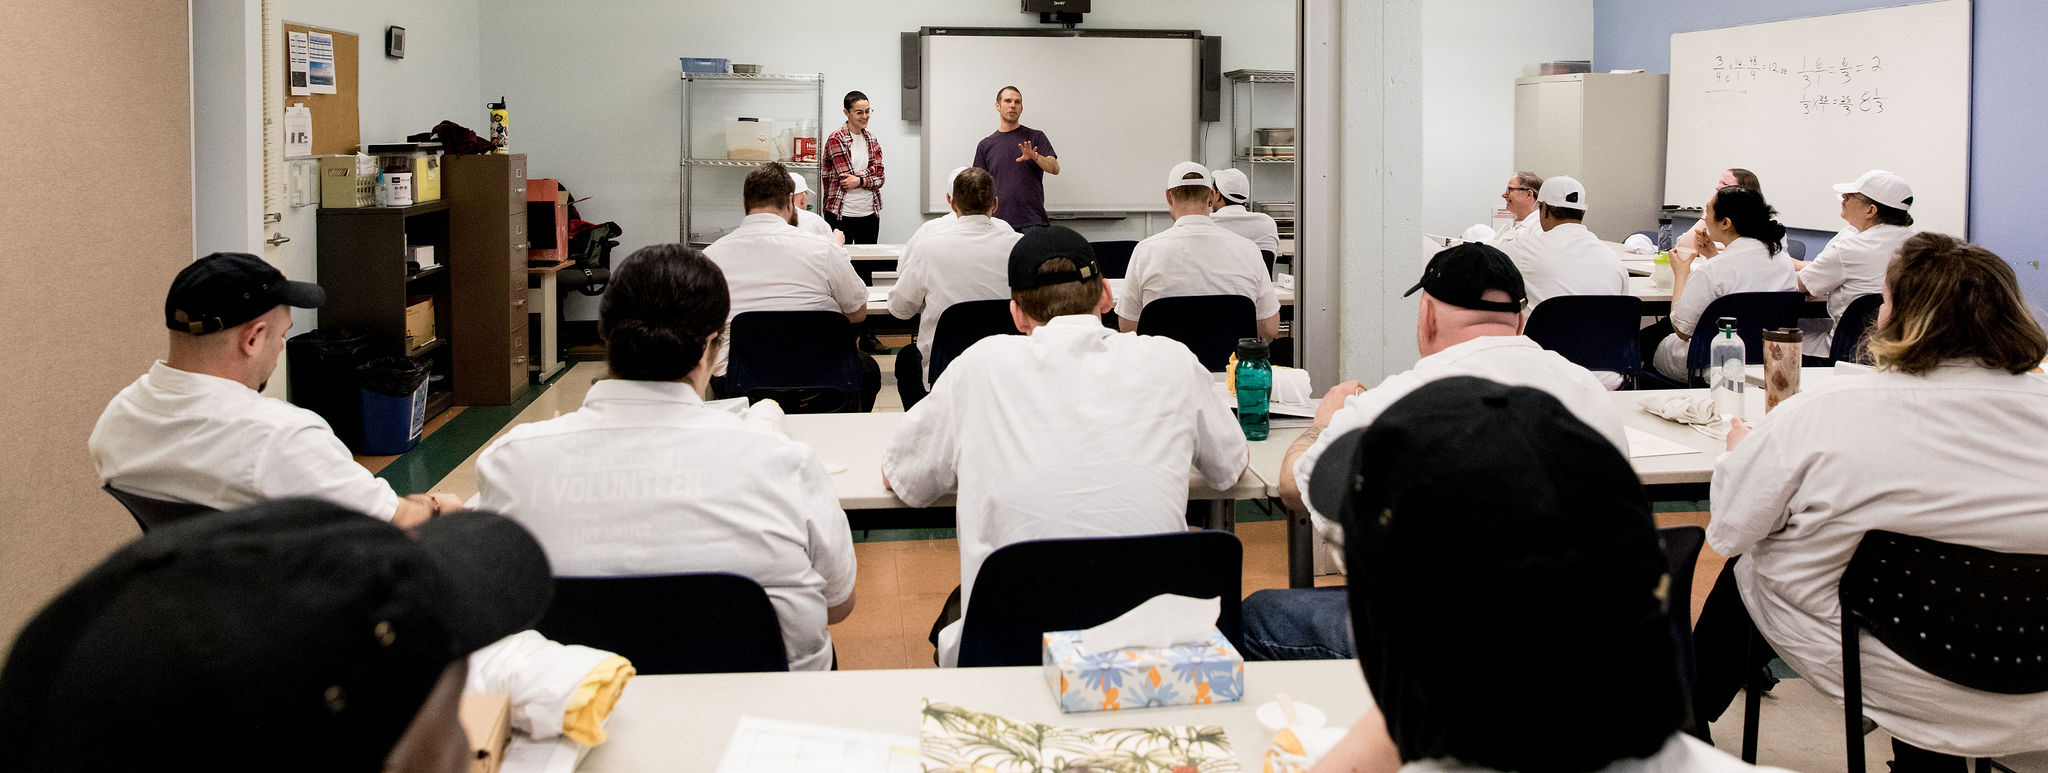 A large group of students in a classroom listening to two instructors